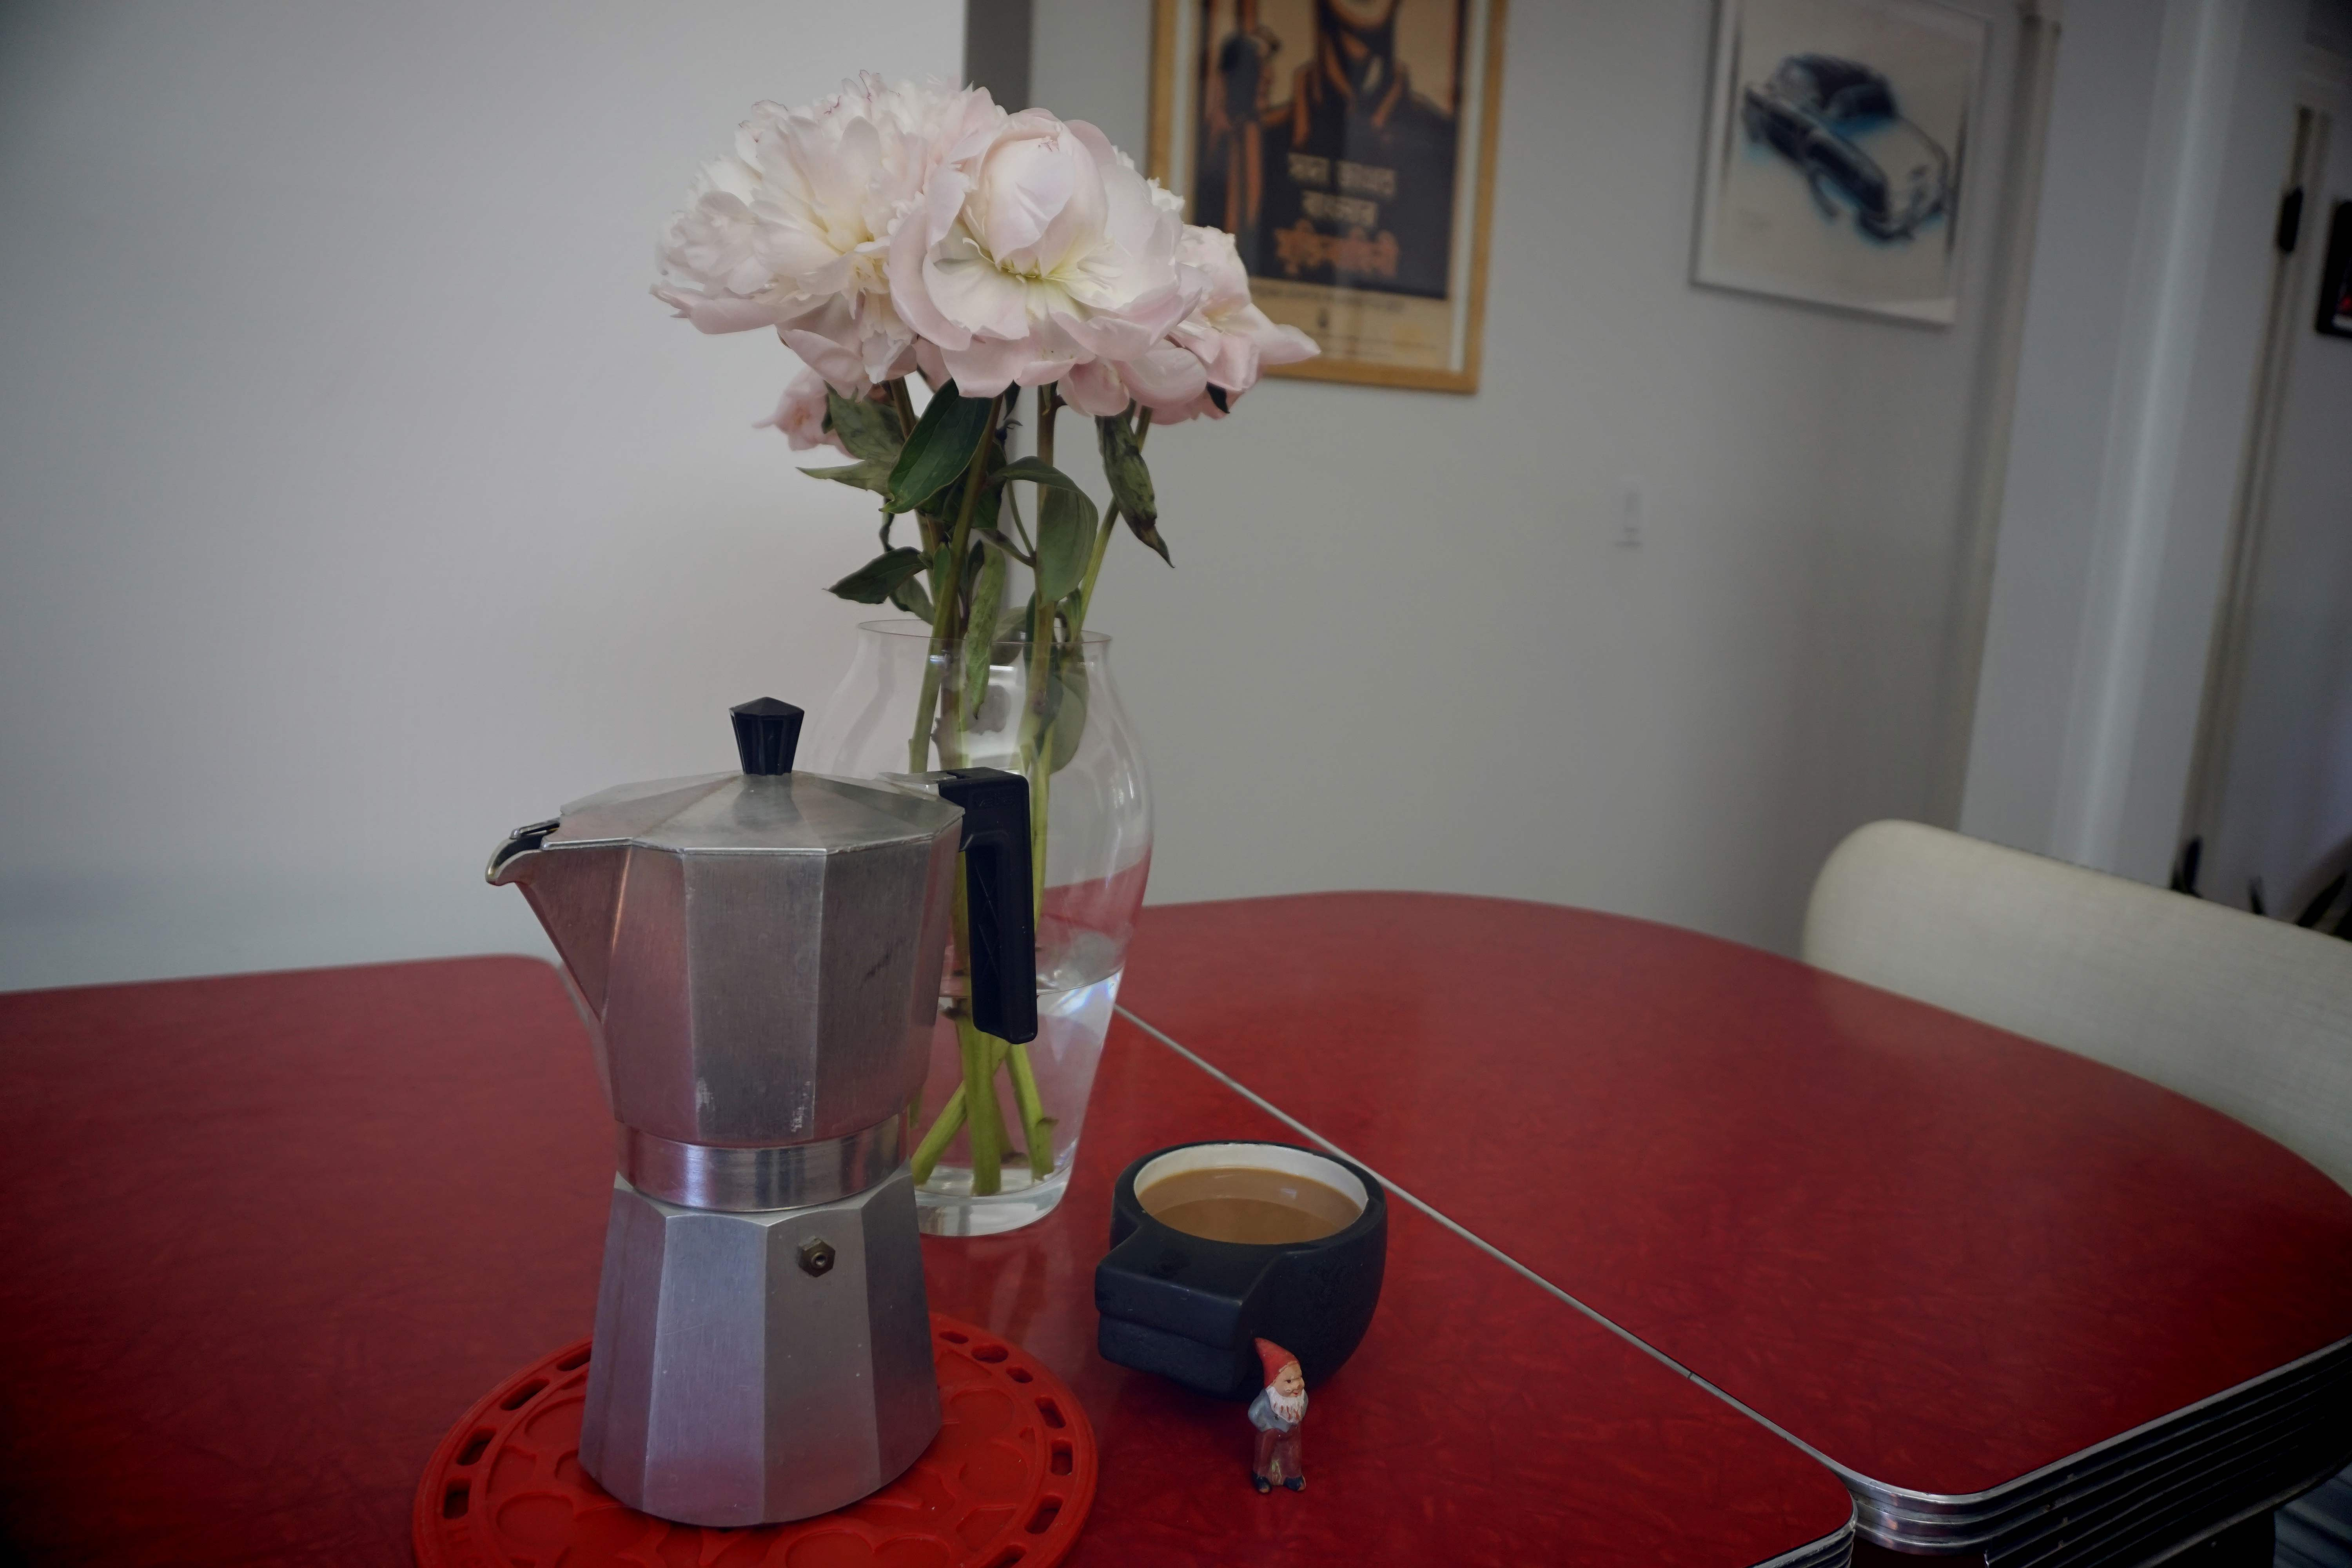 Photo of a coffee maker and some flowers. A small gnome is in the photo.